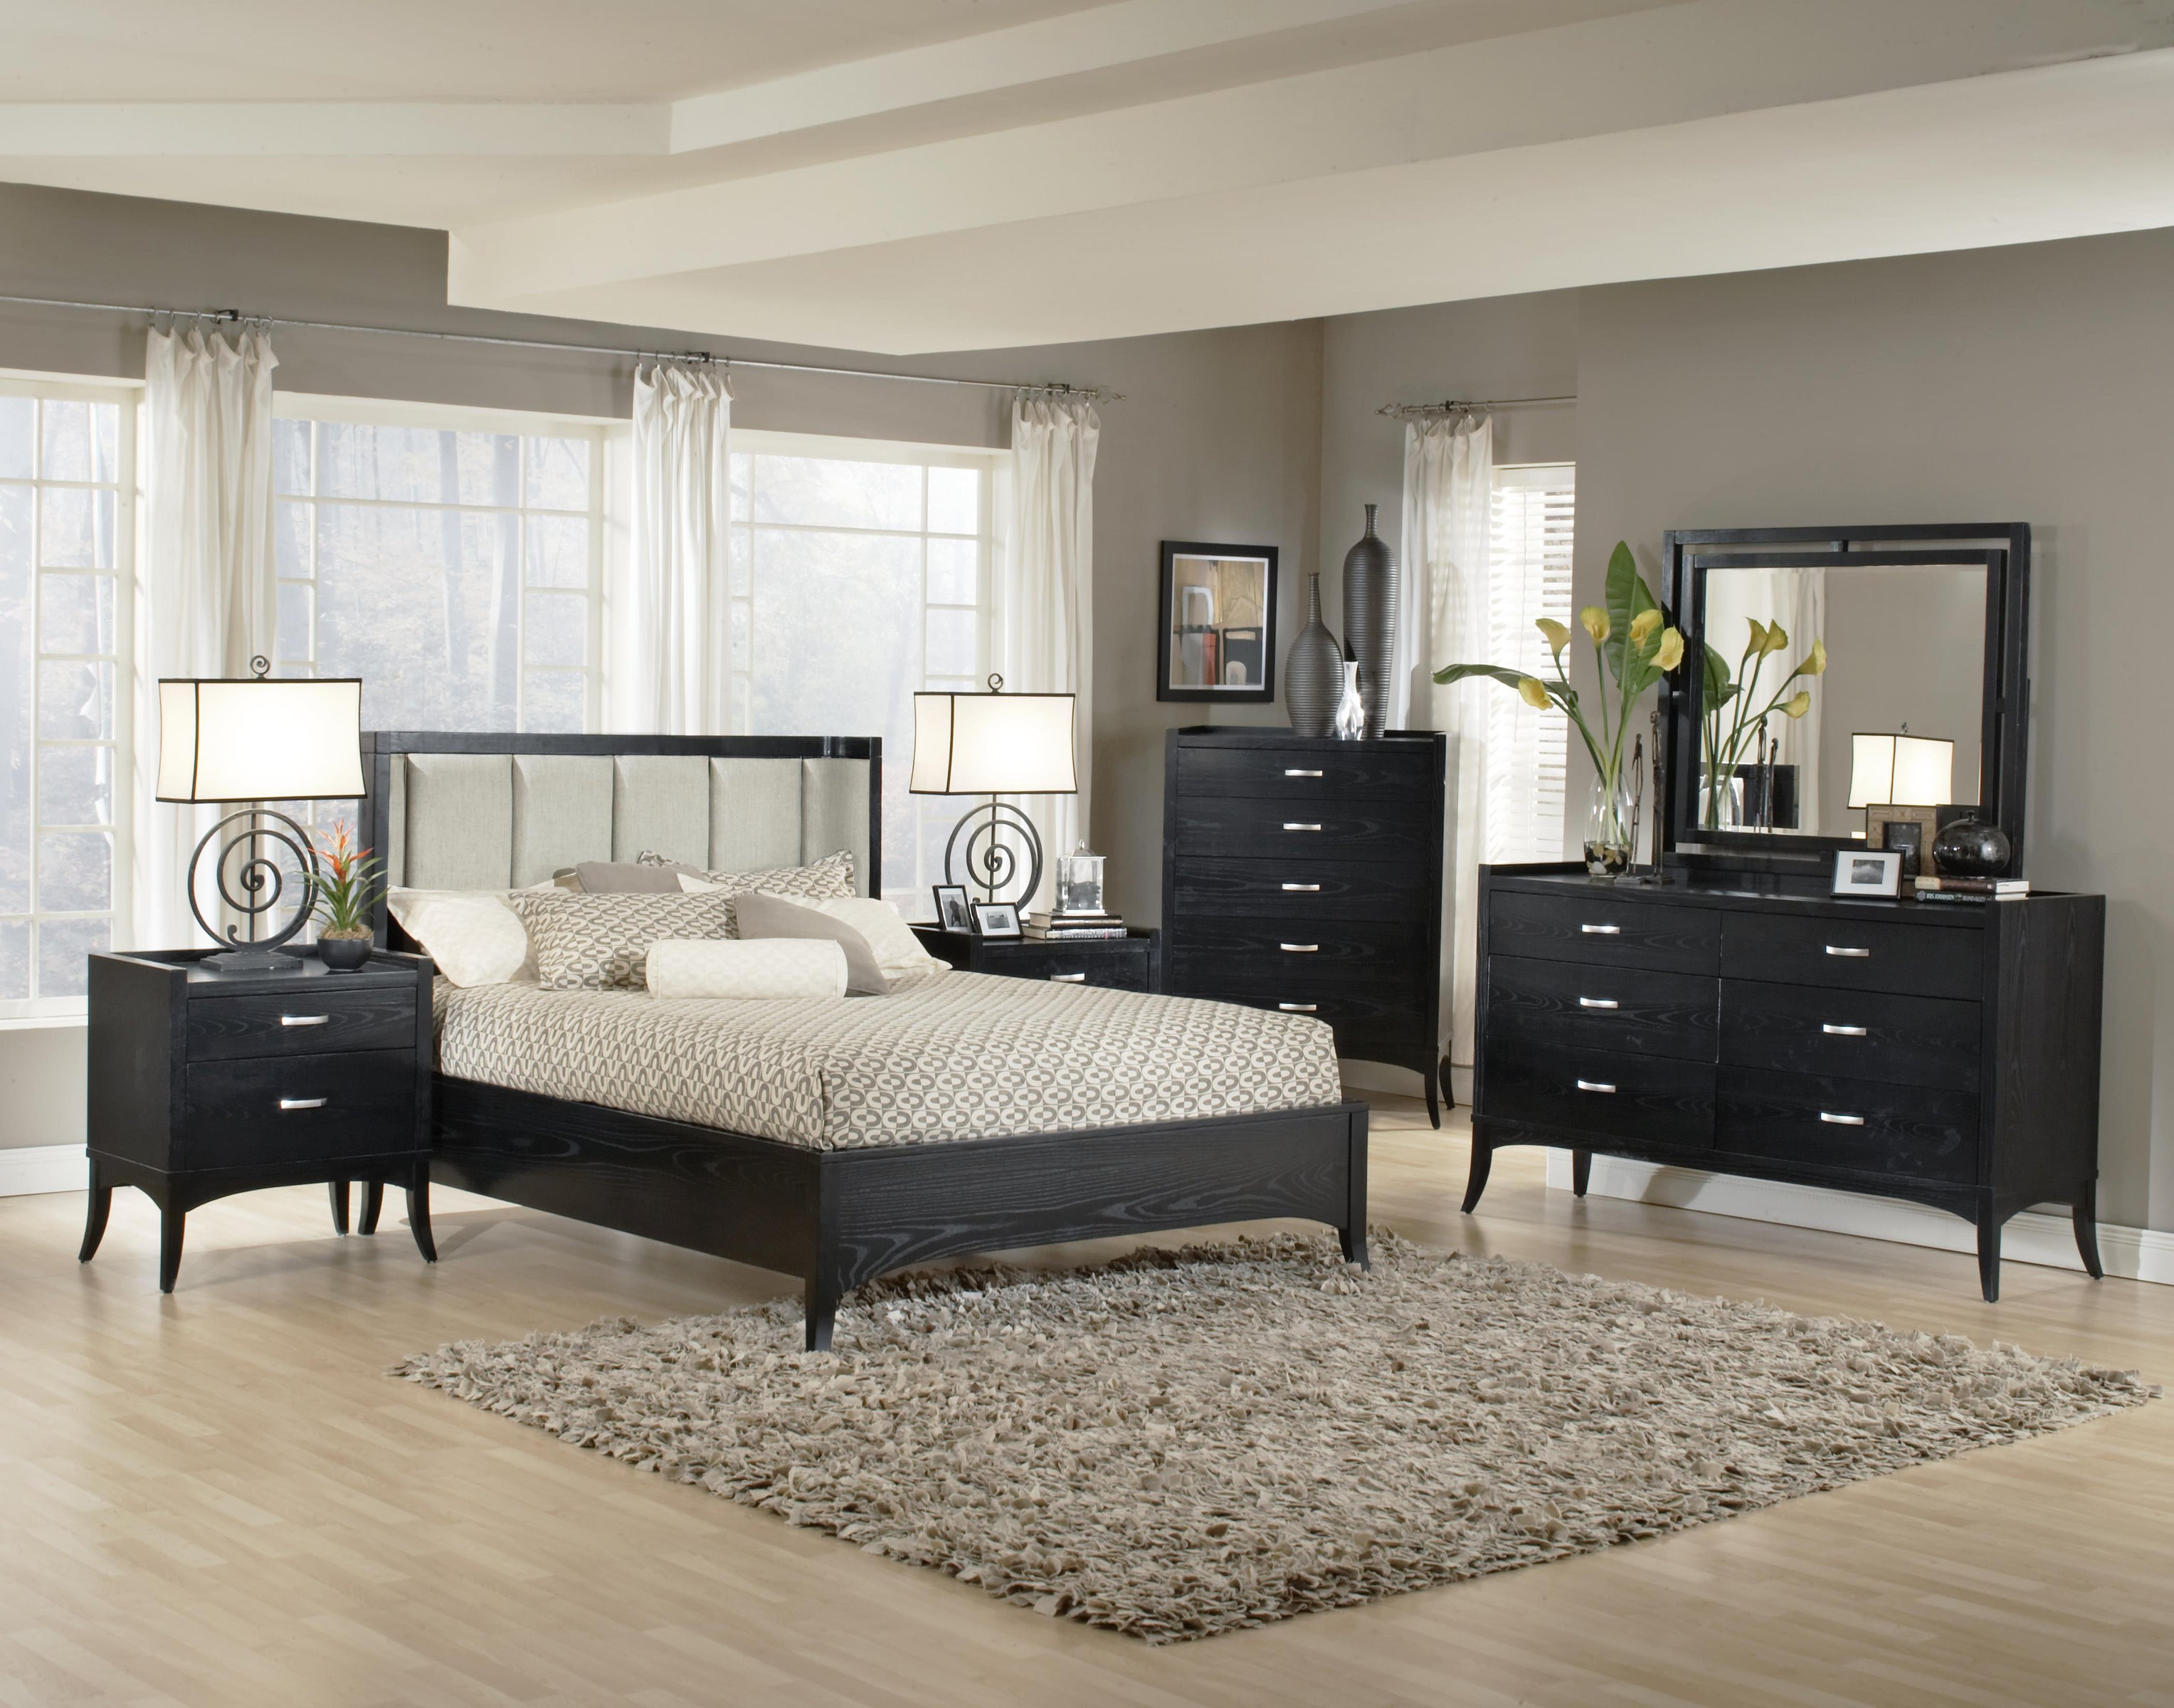 Overstock Bedroom Furniture Sets Park Avenue 6 Piece California King Bedroom Set Free Shipping